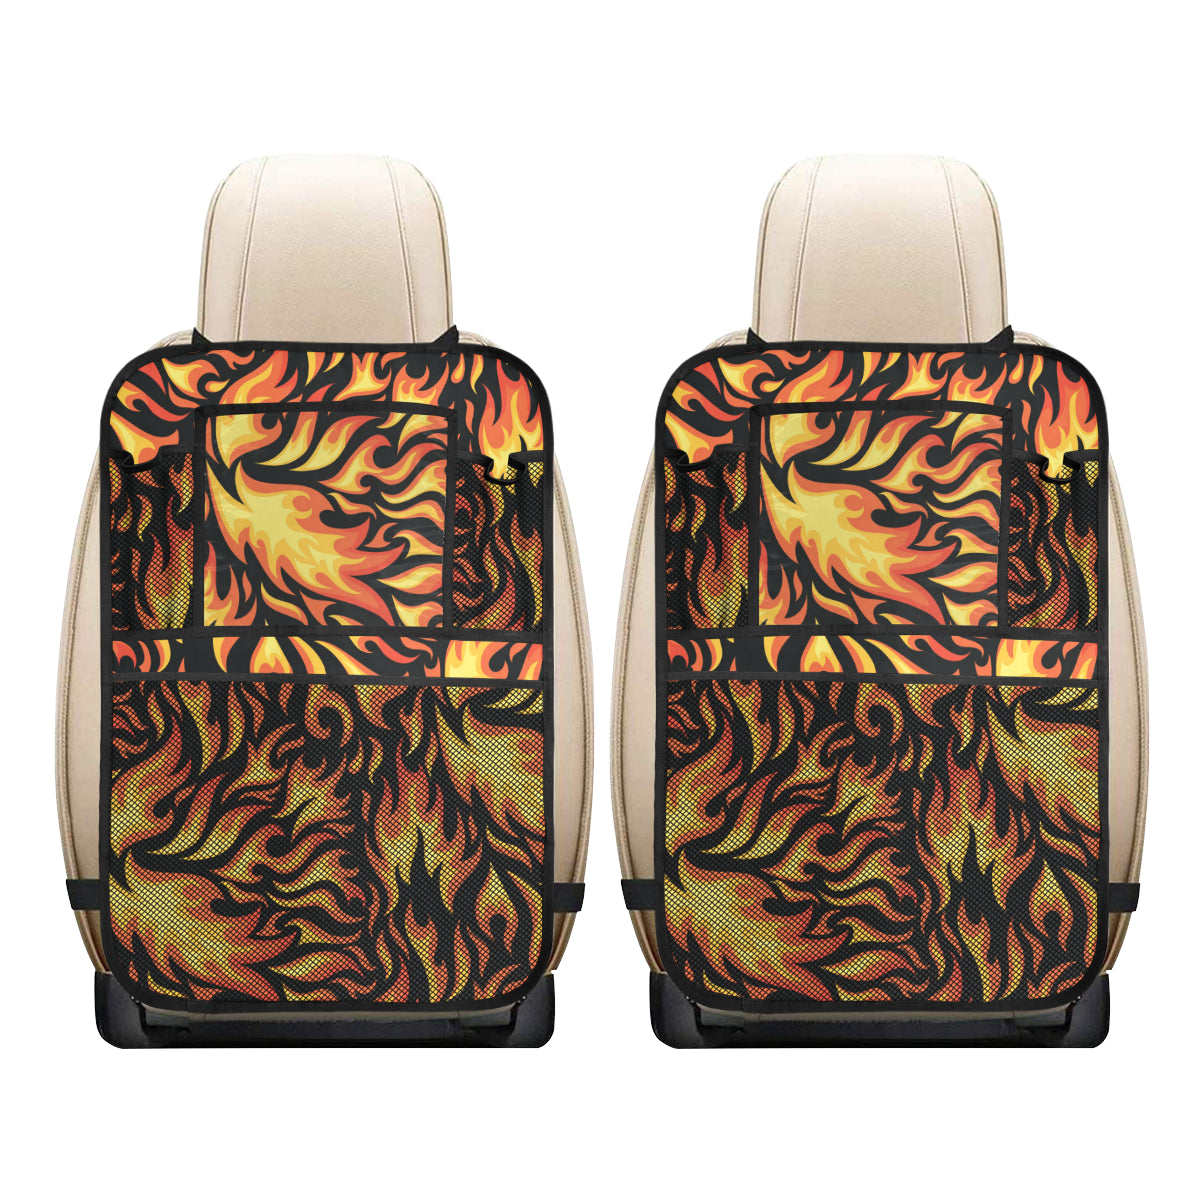 Flame Fire Design Pattern Car Back Seat Organizer